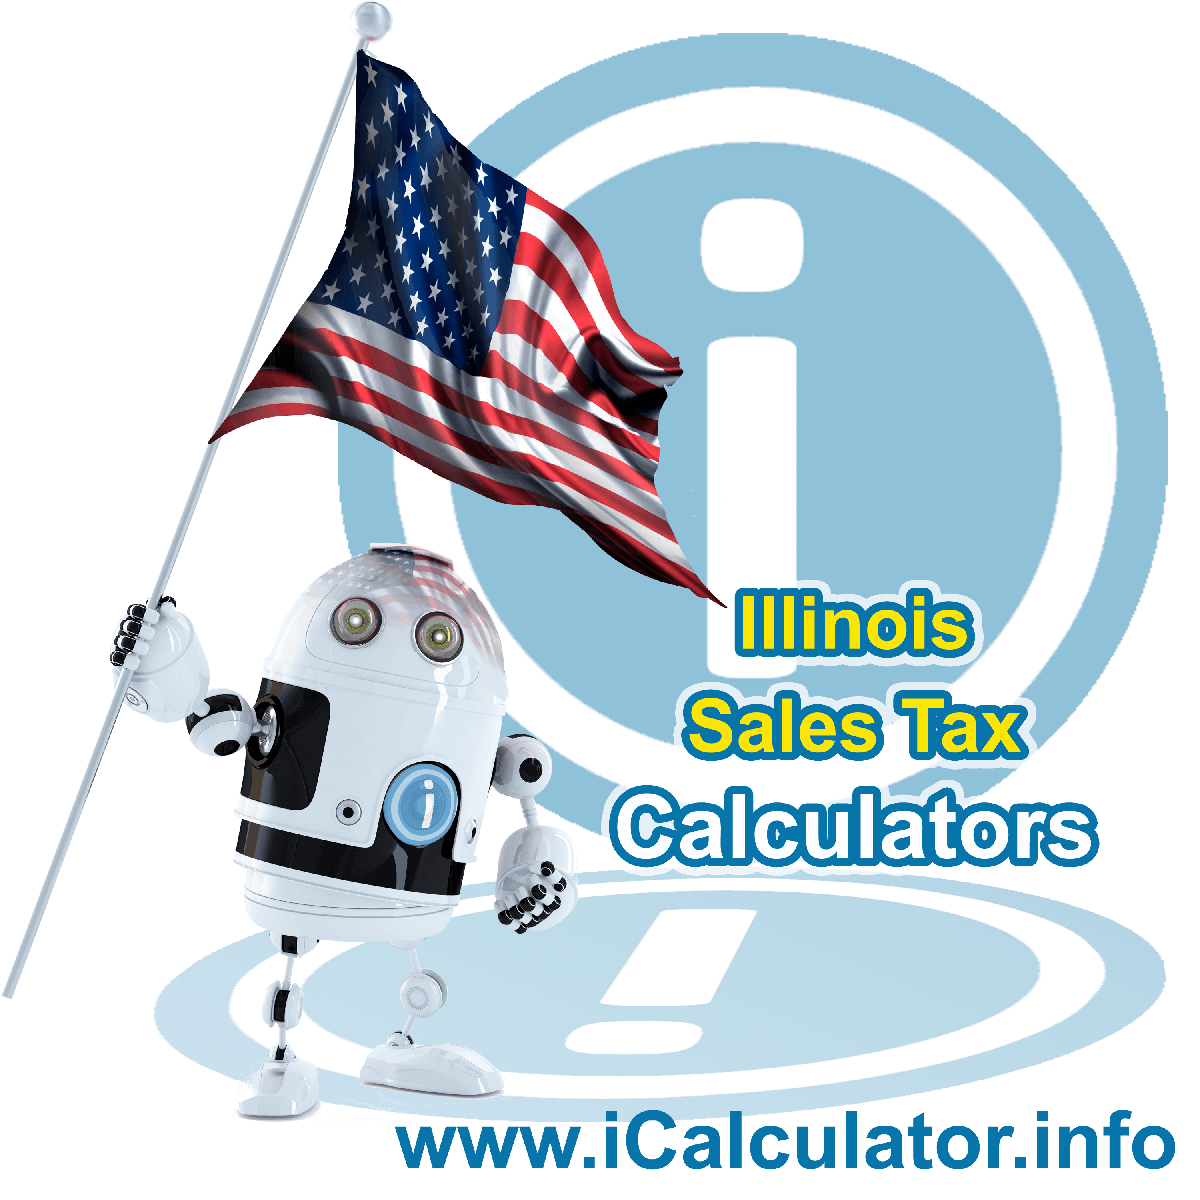 Washburn Sales Rates: This image illustrates a calculator robot calculating Washburn sales tax manually using the Washburn Sales Tax Formula. You can use this information to calculate Washburn Sales Tax manually or use the Washburn Sales Tax Calculator to calculate sales tax online.